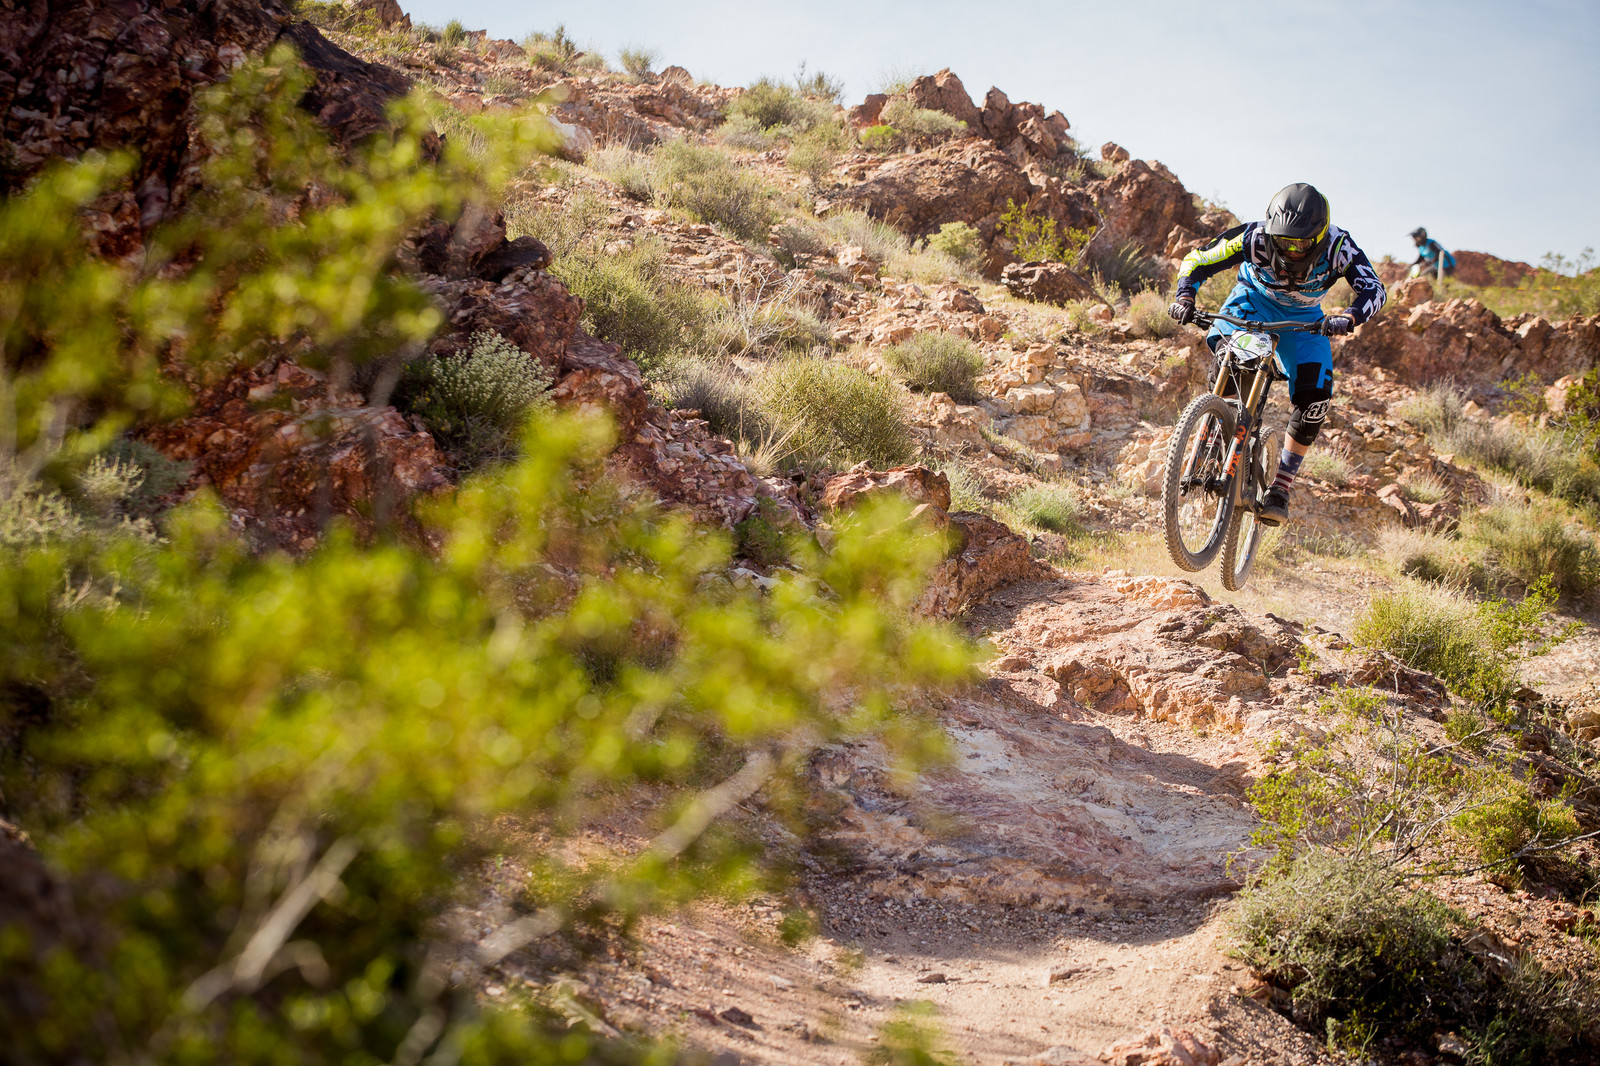 2017 Reaper Madness DH at Bootleg Canyon-17 - 2017 Reaper Madness DH Photos - Mountain Biking Pictures - Vital MTB